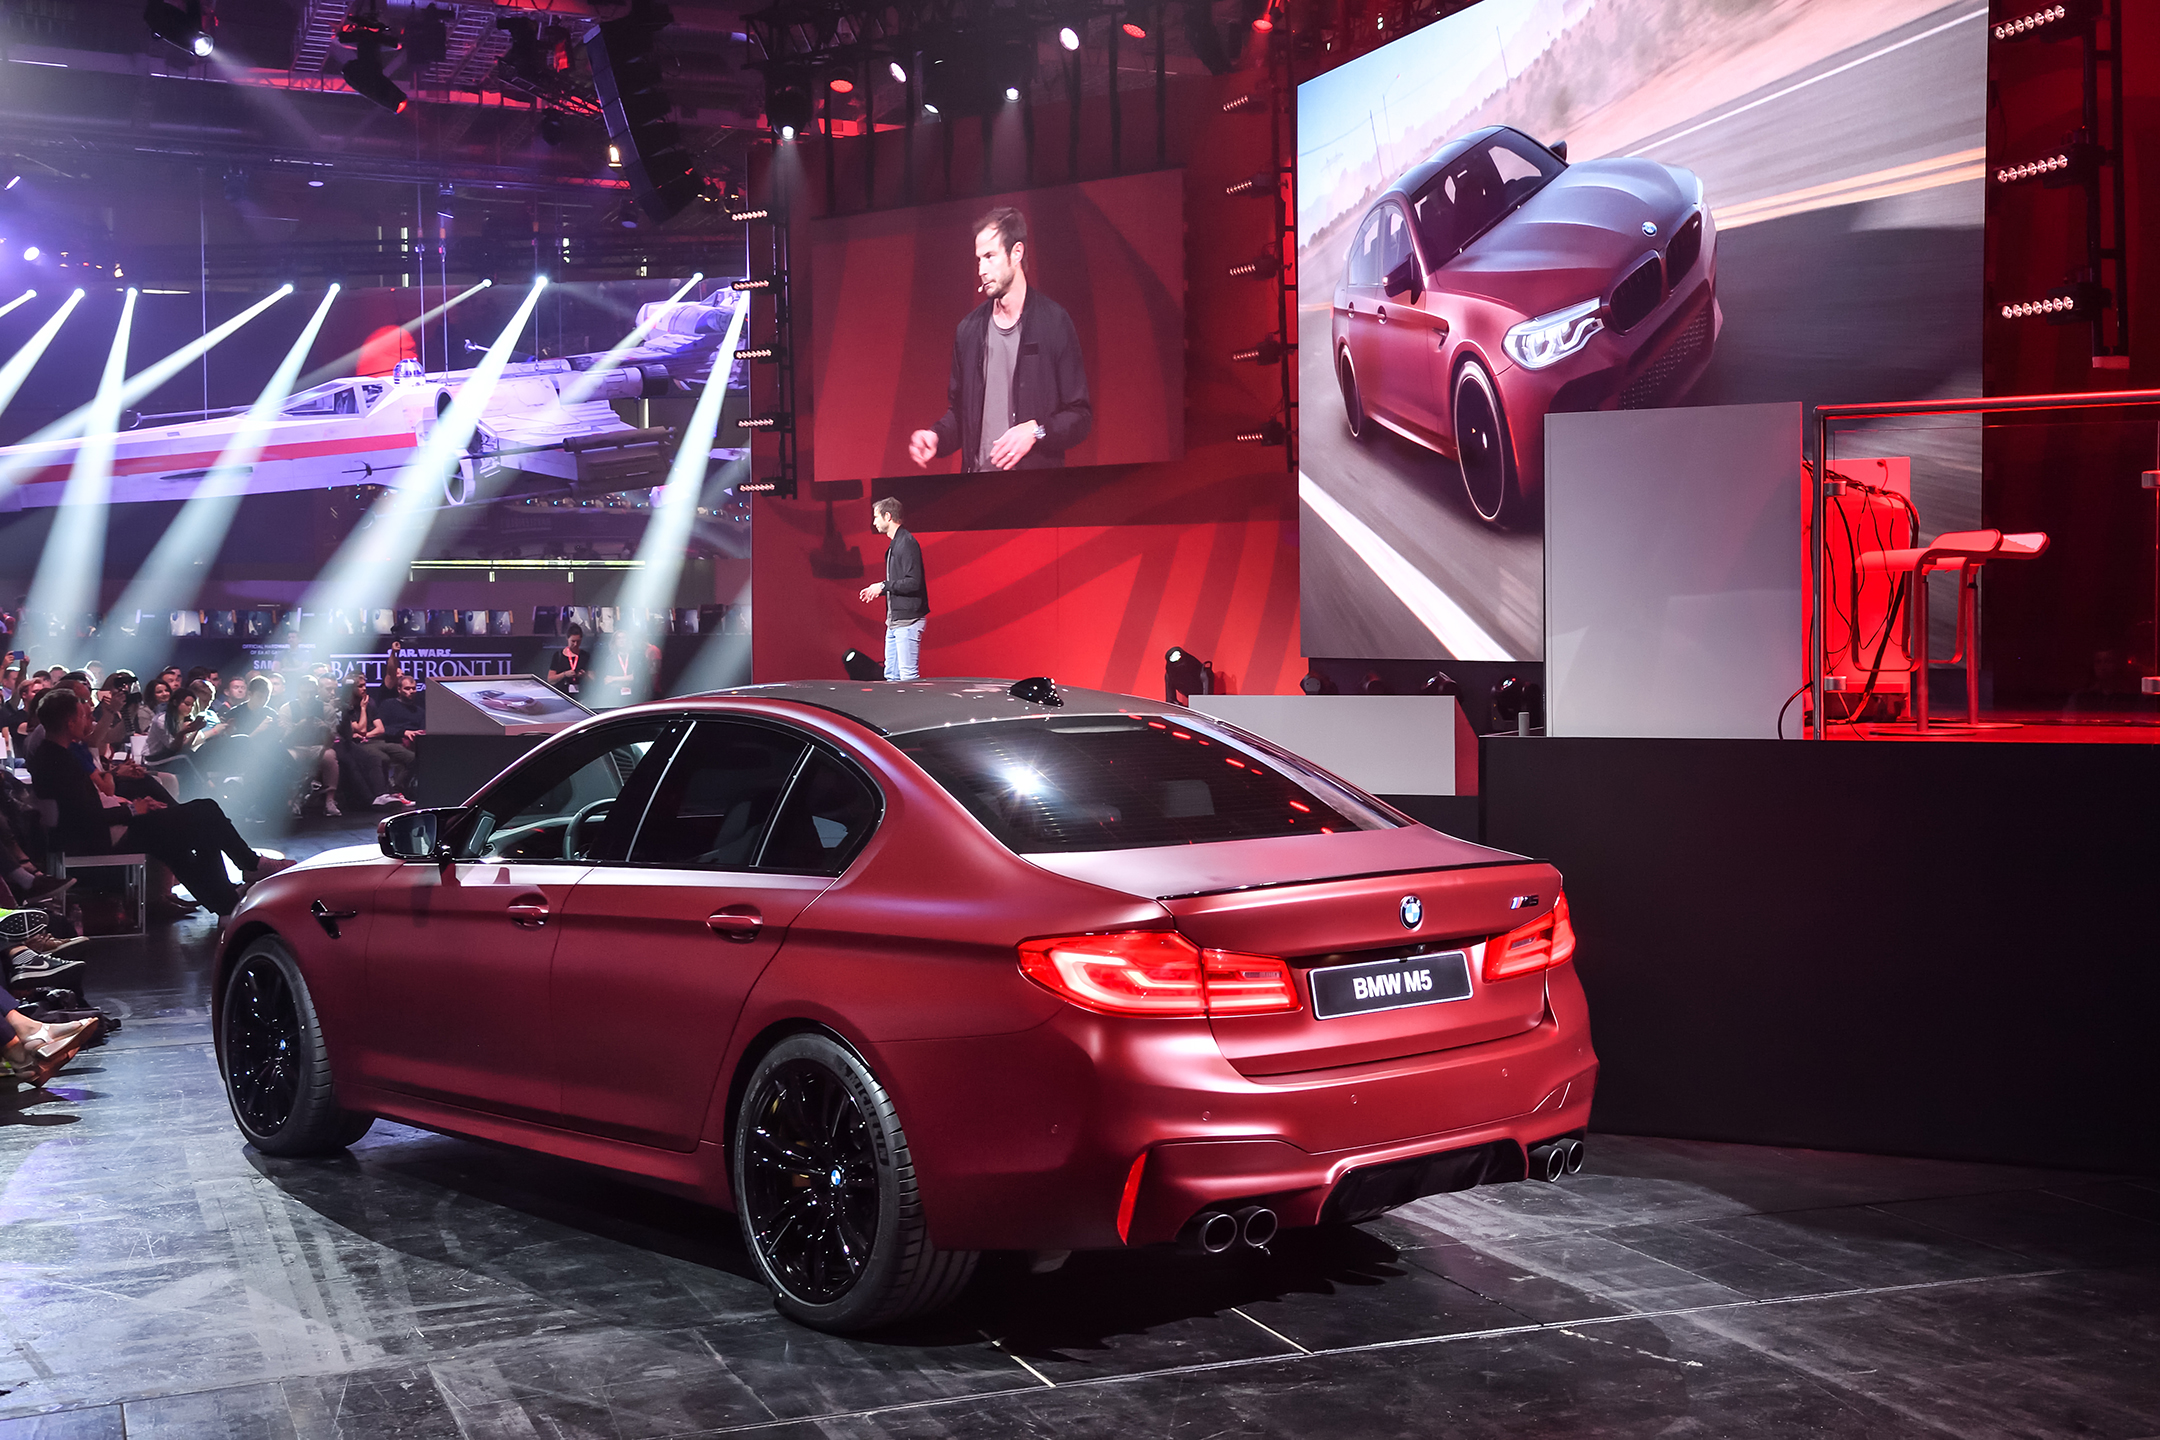 BMW M5 F90 - 2017 - rear / arrière - Gamescom 2017 - EA live - show Need for Speed Payback